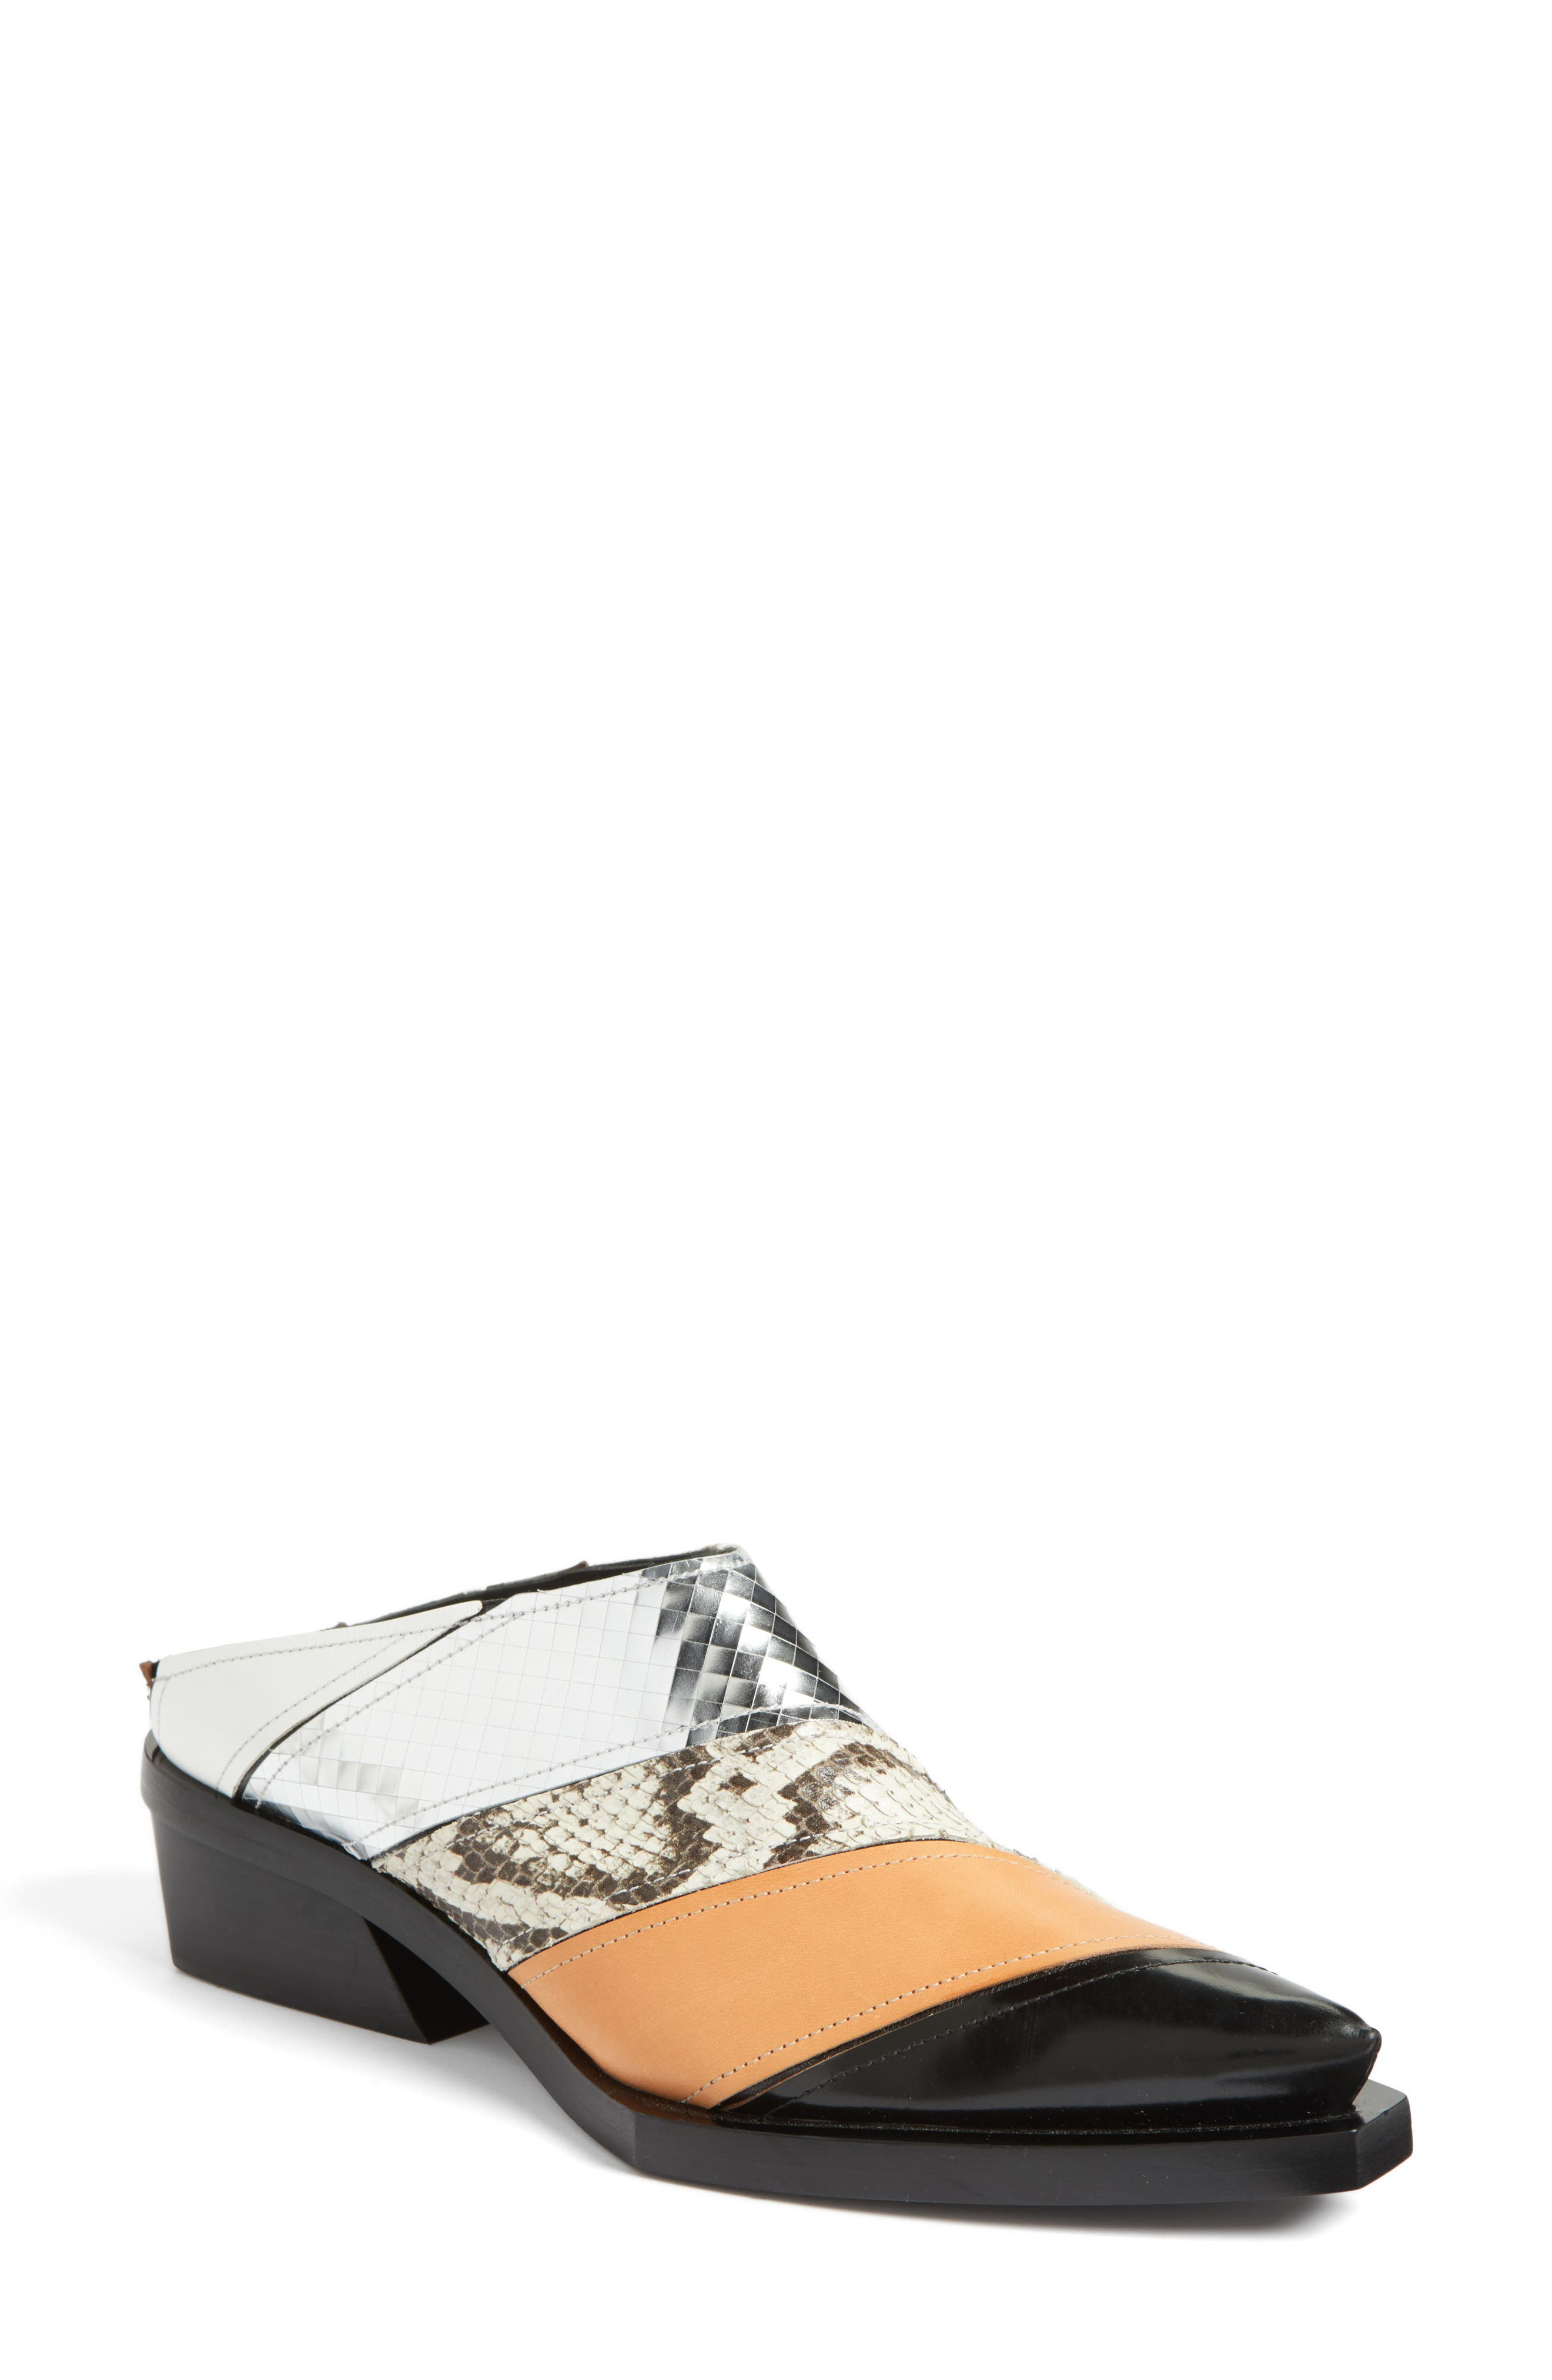 Proenza Schouler Backless Mule (Women)